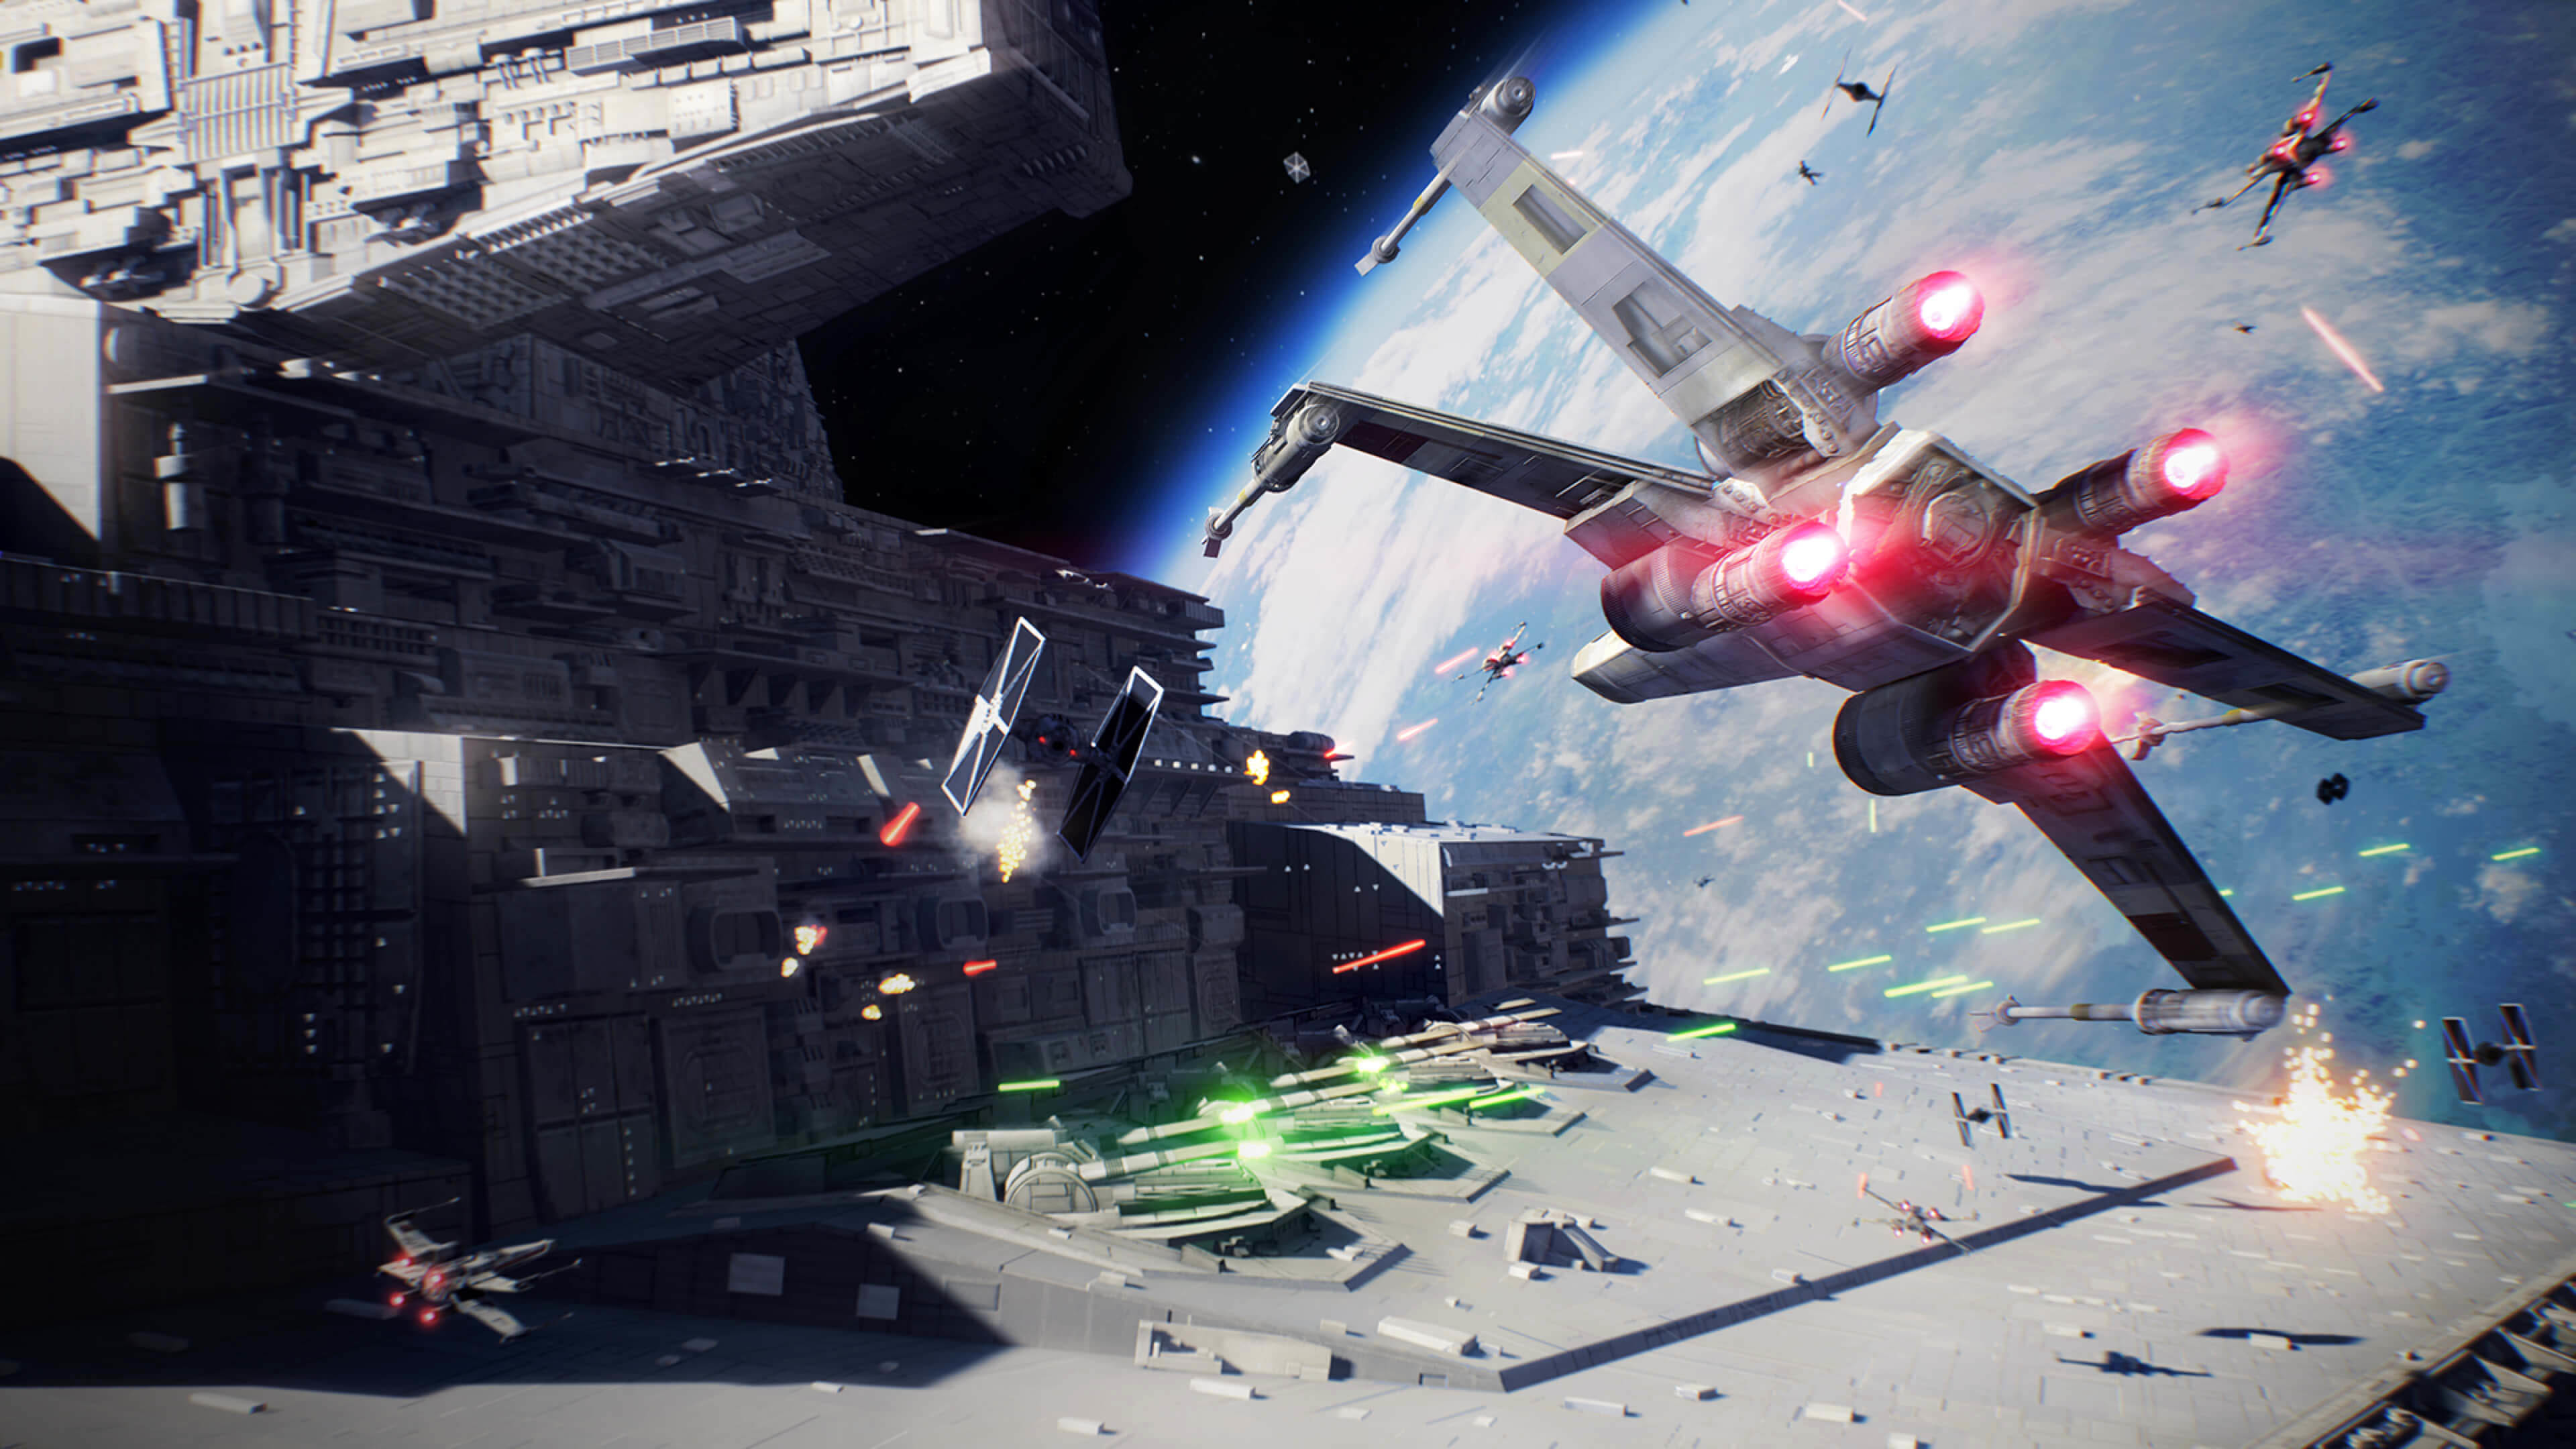 3840x2160 Star Wars: Battlefront II Space Battle  wallpaper